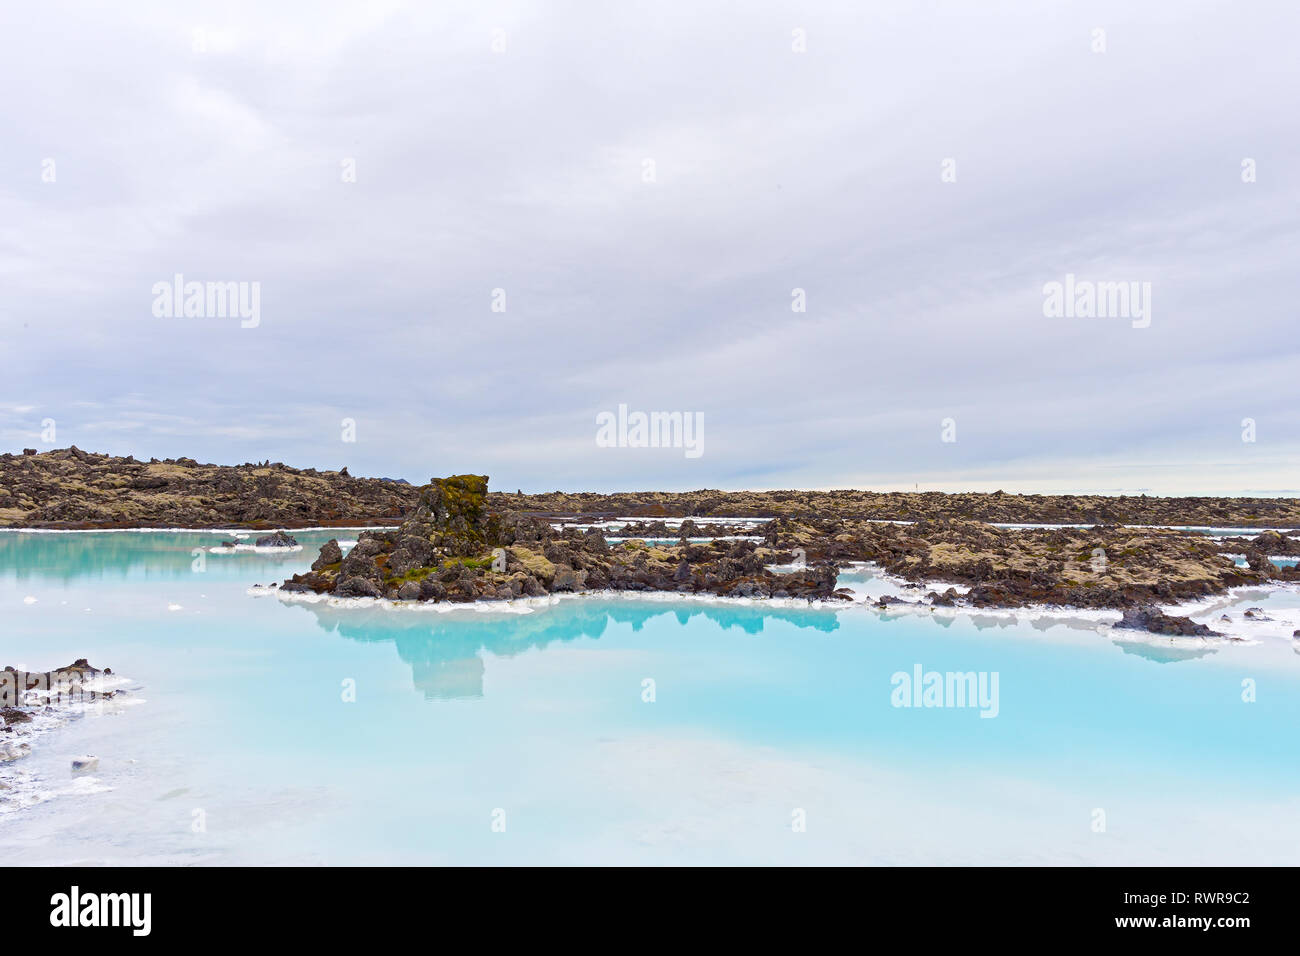 A lava field with geothermal water near Grindavik in Iceland. Beautiful unearthly landscape on a cloudy day. - Stock Image